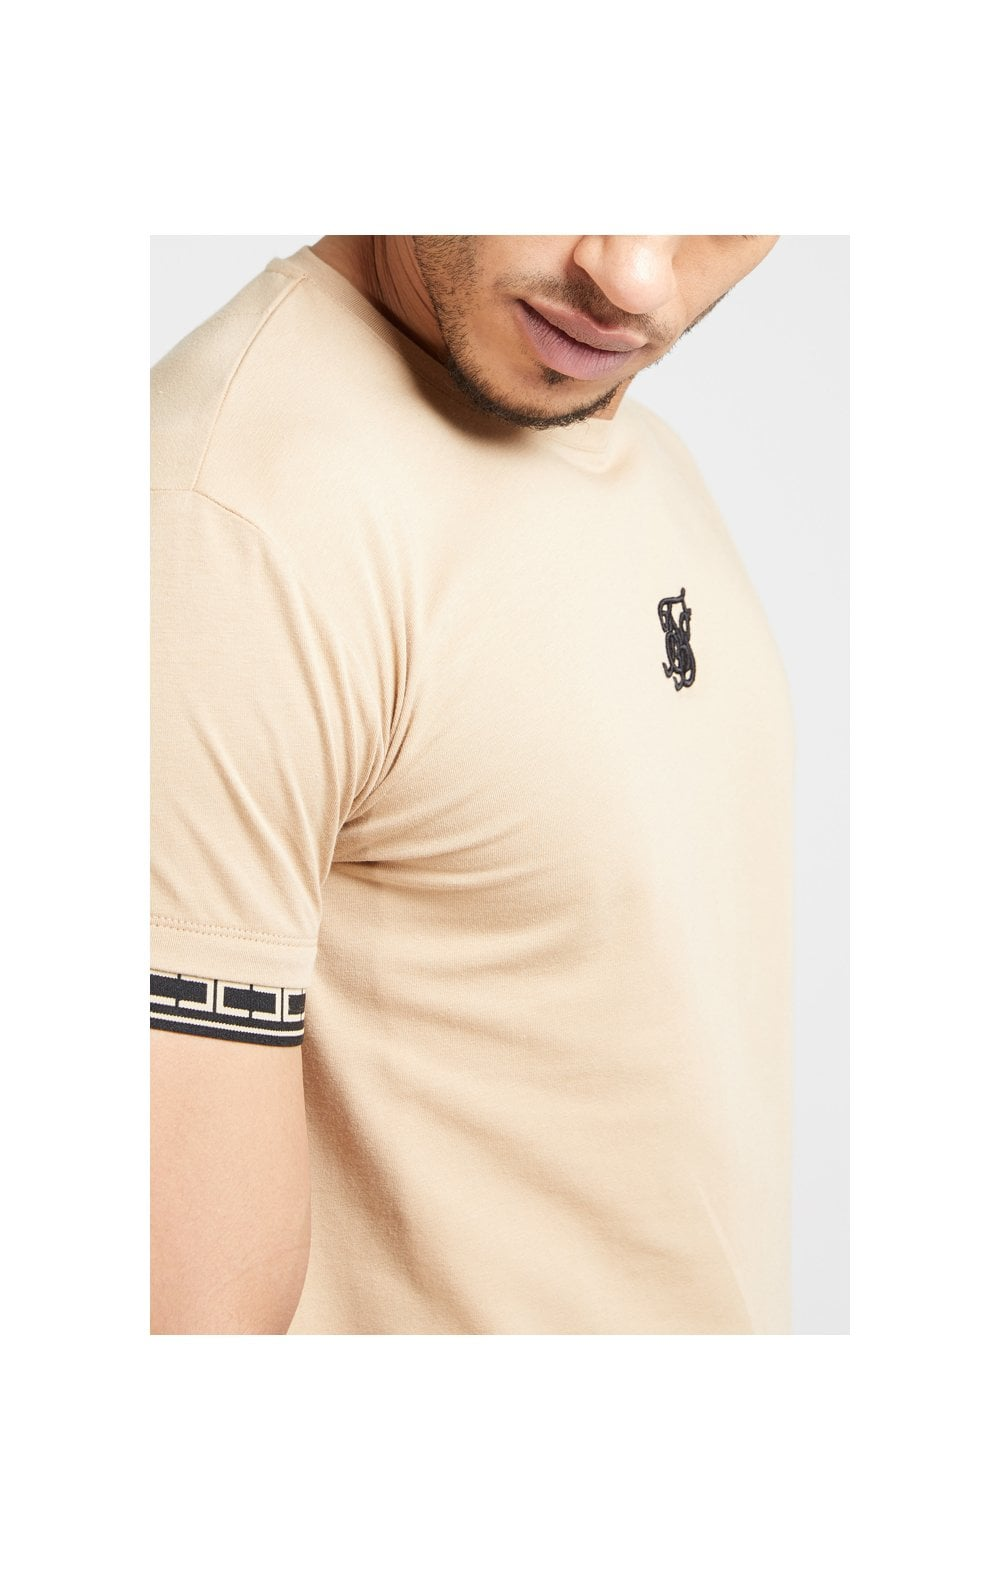 SikSilk S/S Scope Gym Tee – Beige (6)